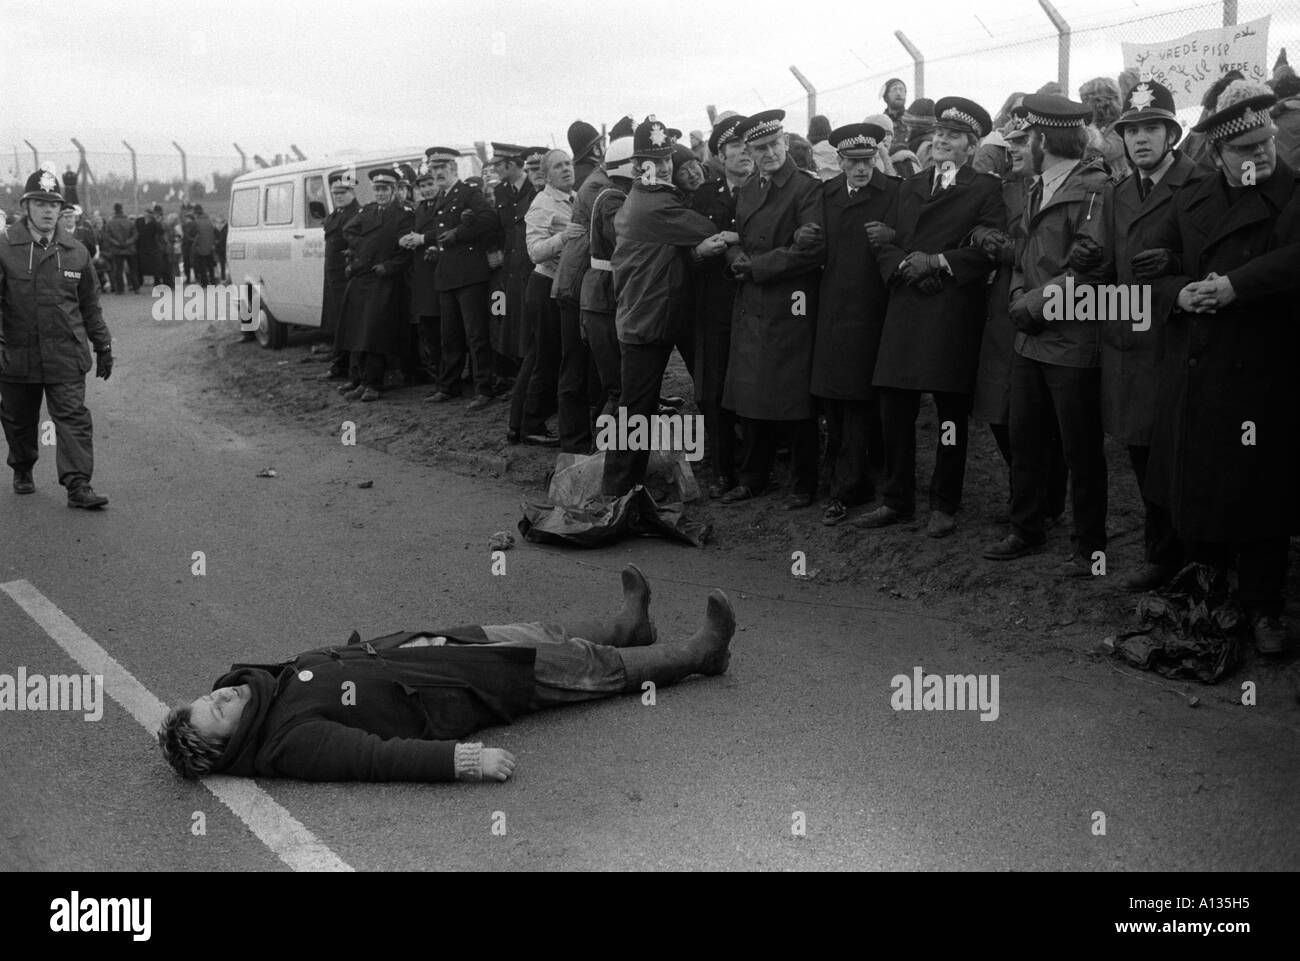 Blockade der USAF nukleare Marschflugkörper Air Base in Greenham Common Berkshire England 1983 1980s UK HOMER SYKES Stockbild